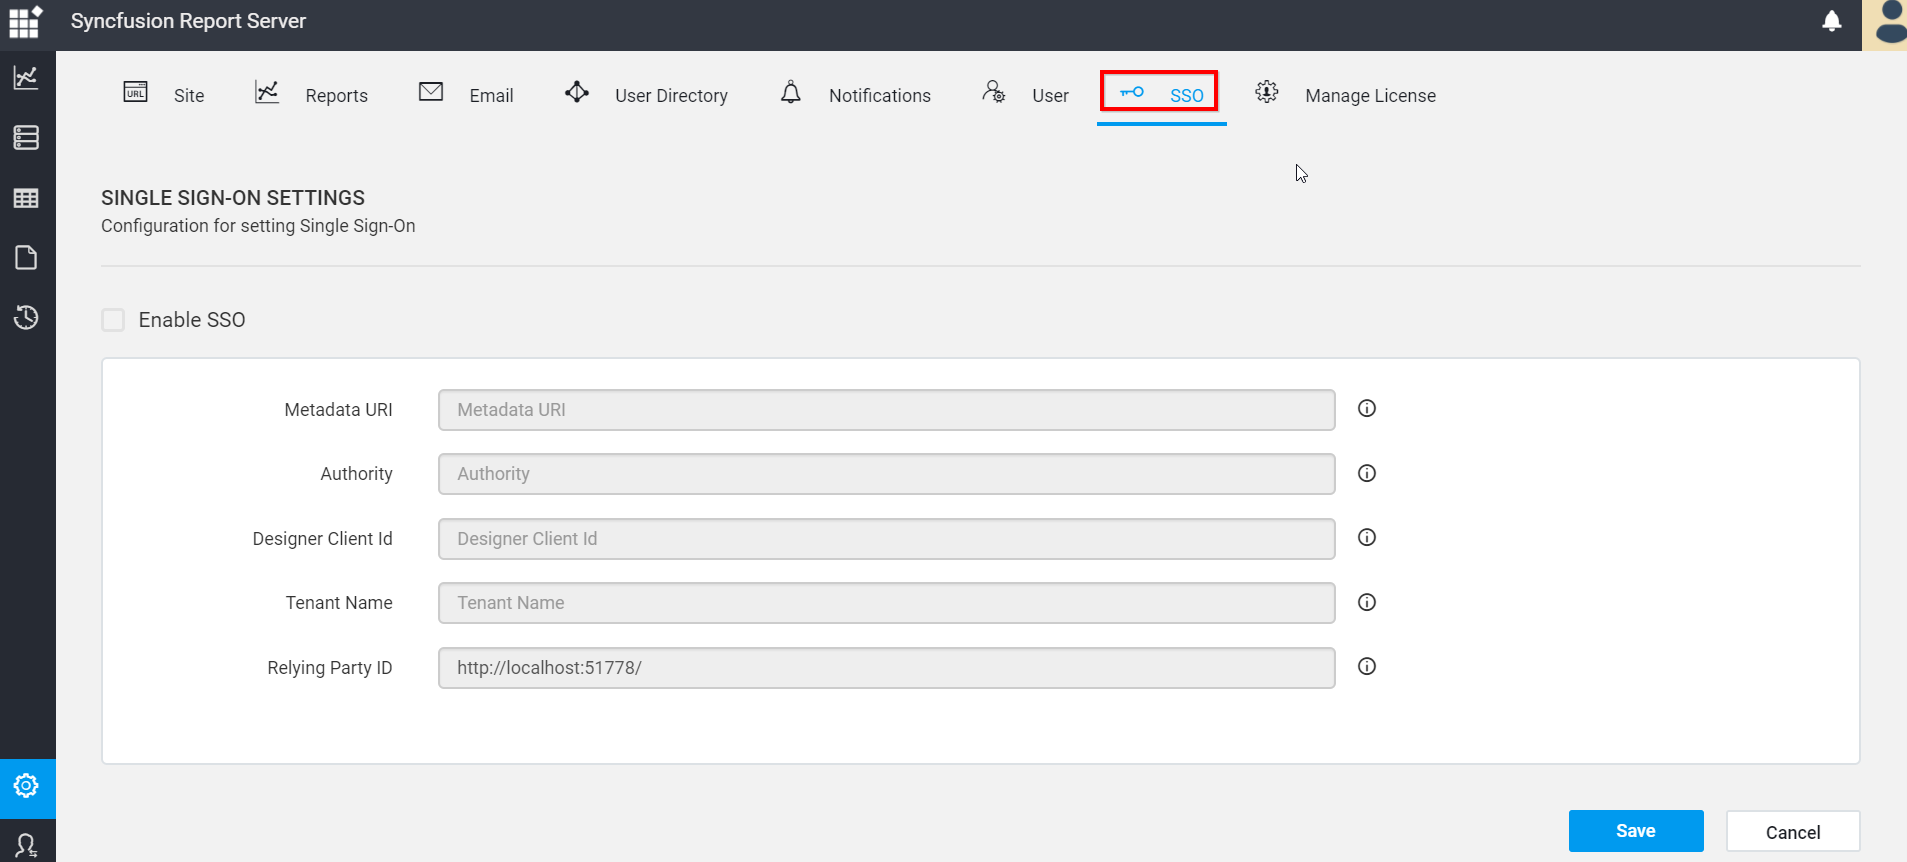 Configure Single Sign-On Details   Report Server   Syncfusion